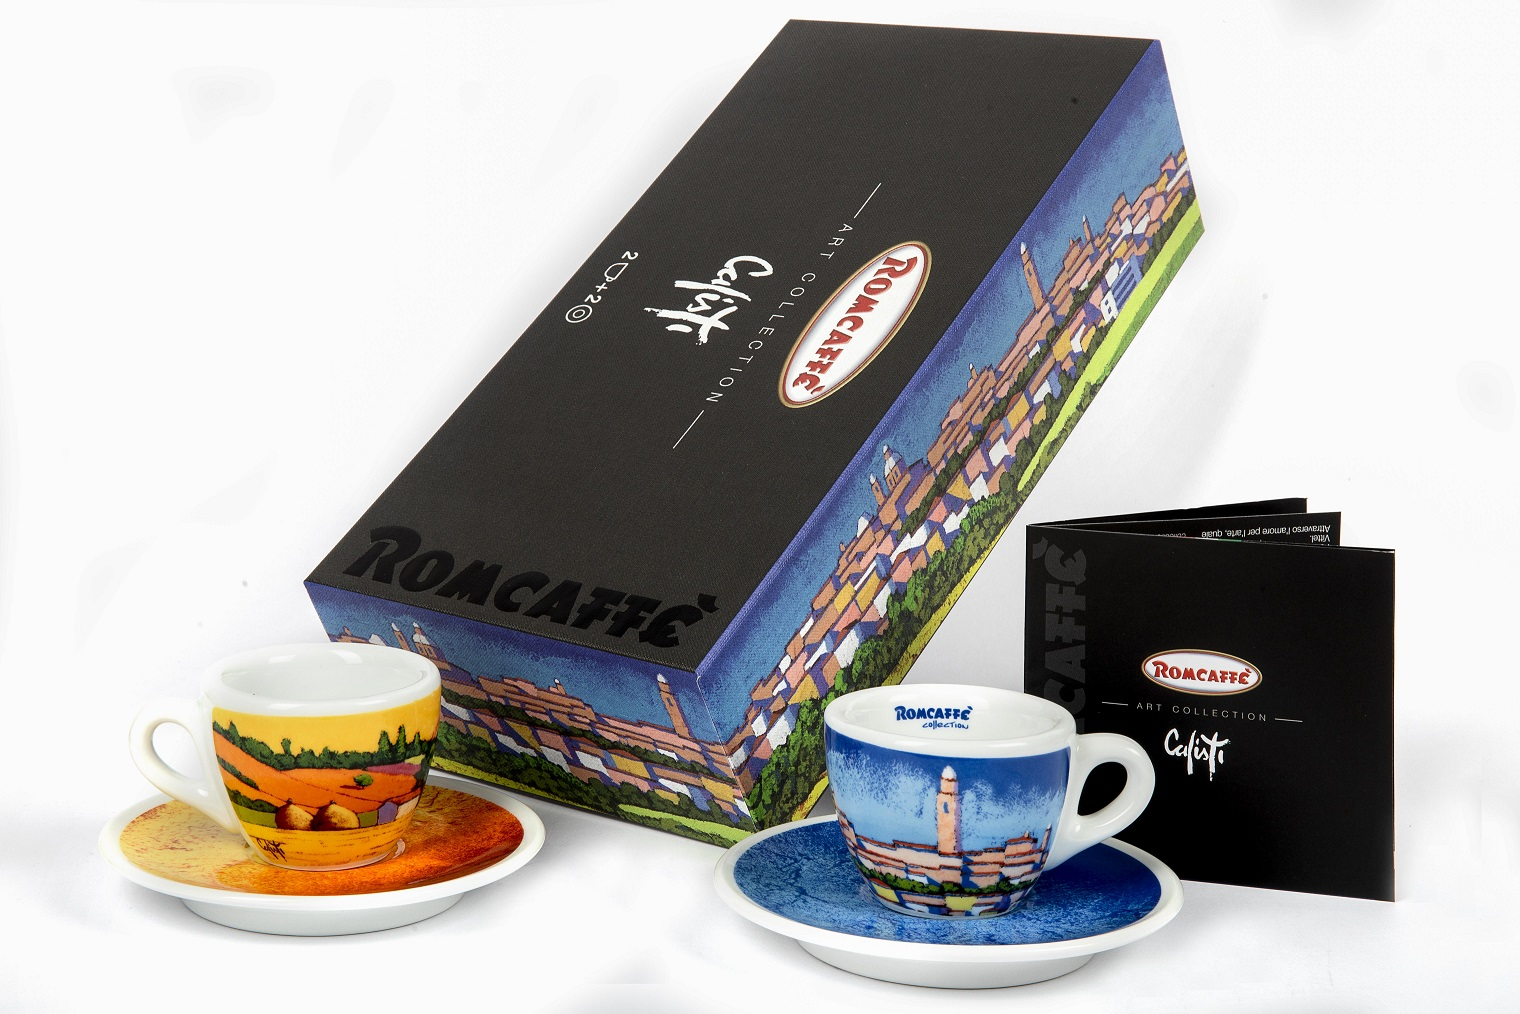 Box for artistic coffee cups